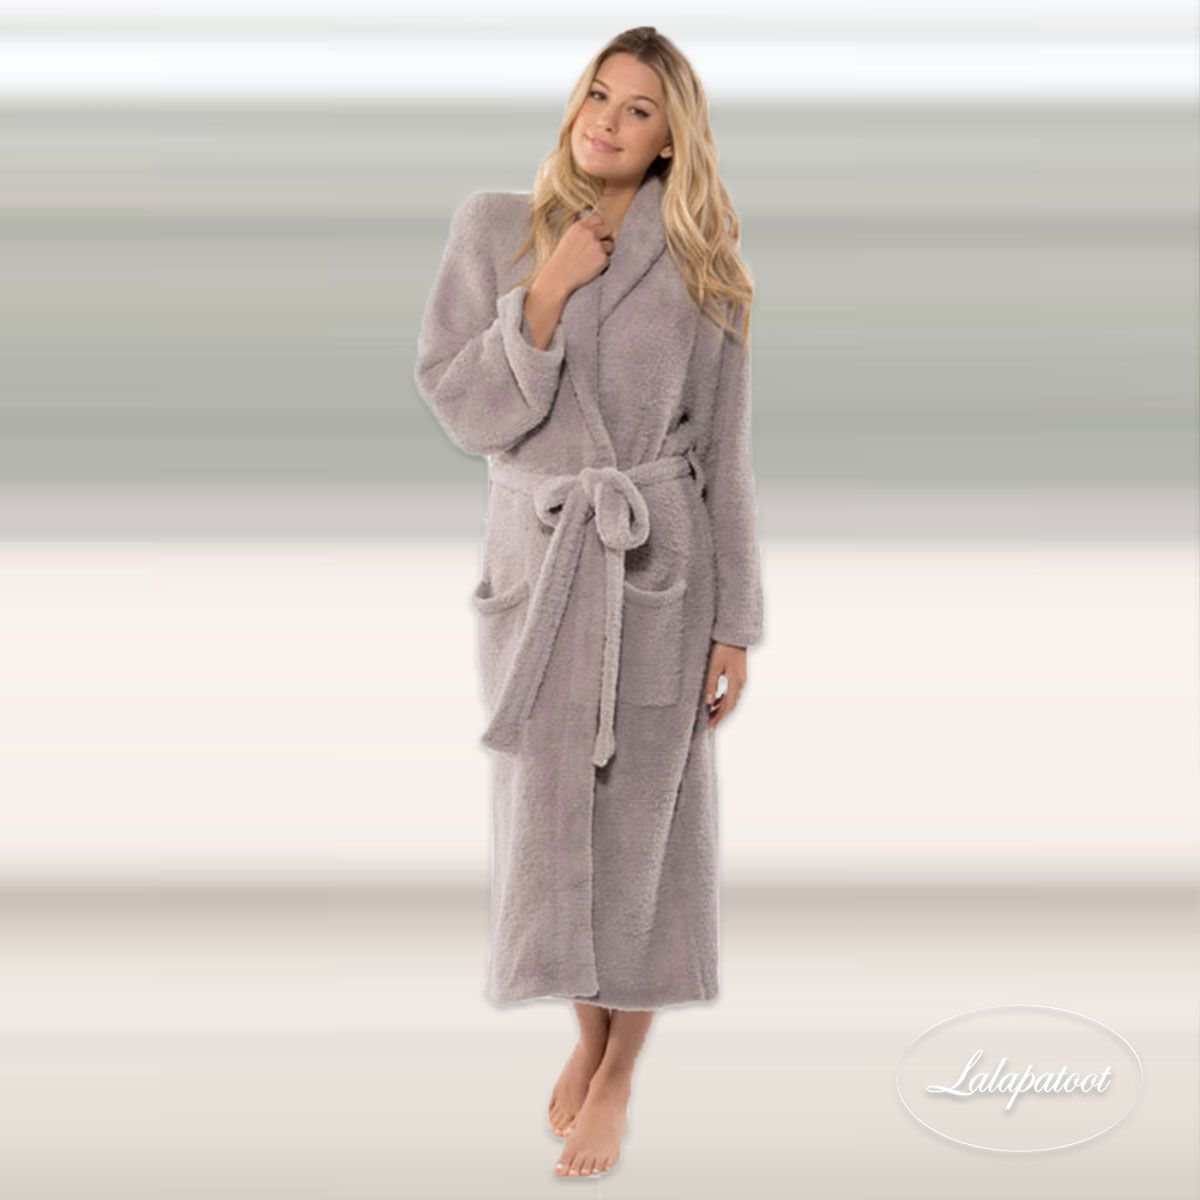 Shop bathrobes on sale for MOM:  30%-50%OFF till 5/3/16 Midnight EST. www.lalapatoot.com #sale   #mothersday   #mothers   #mothersdaygift   #mothersday2016   #mothersdaygifts #gifts   #robes   #bathrobes